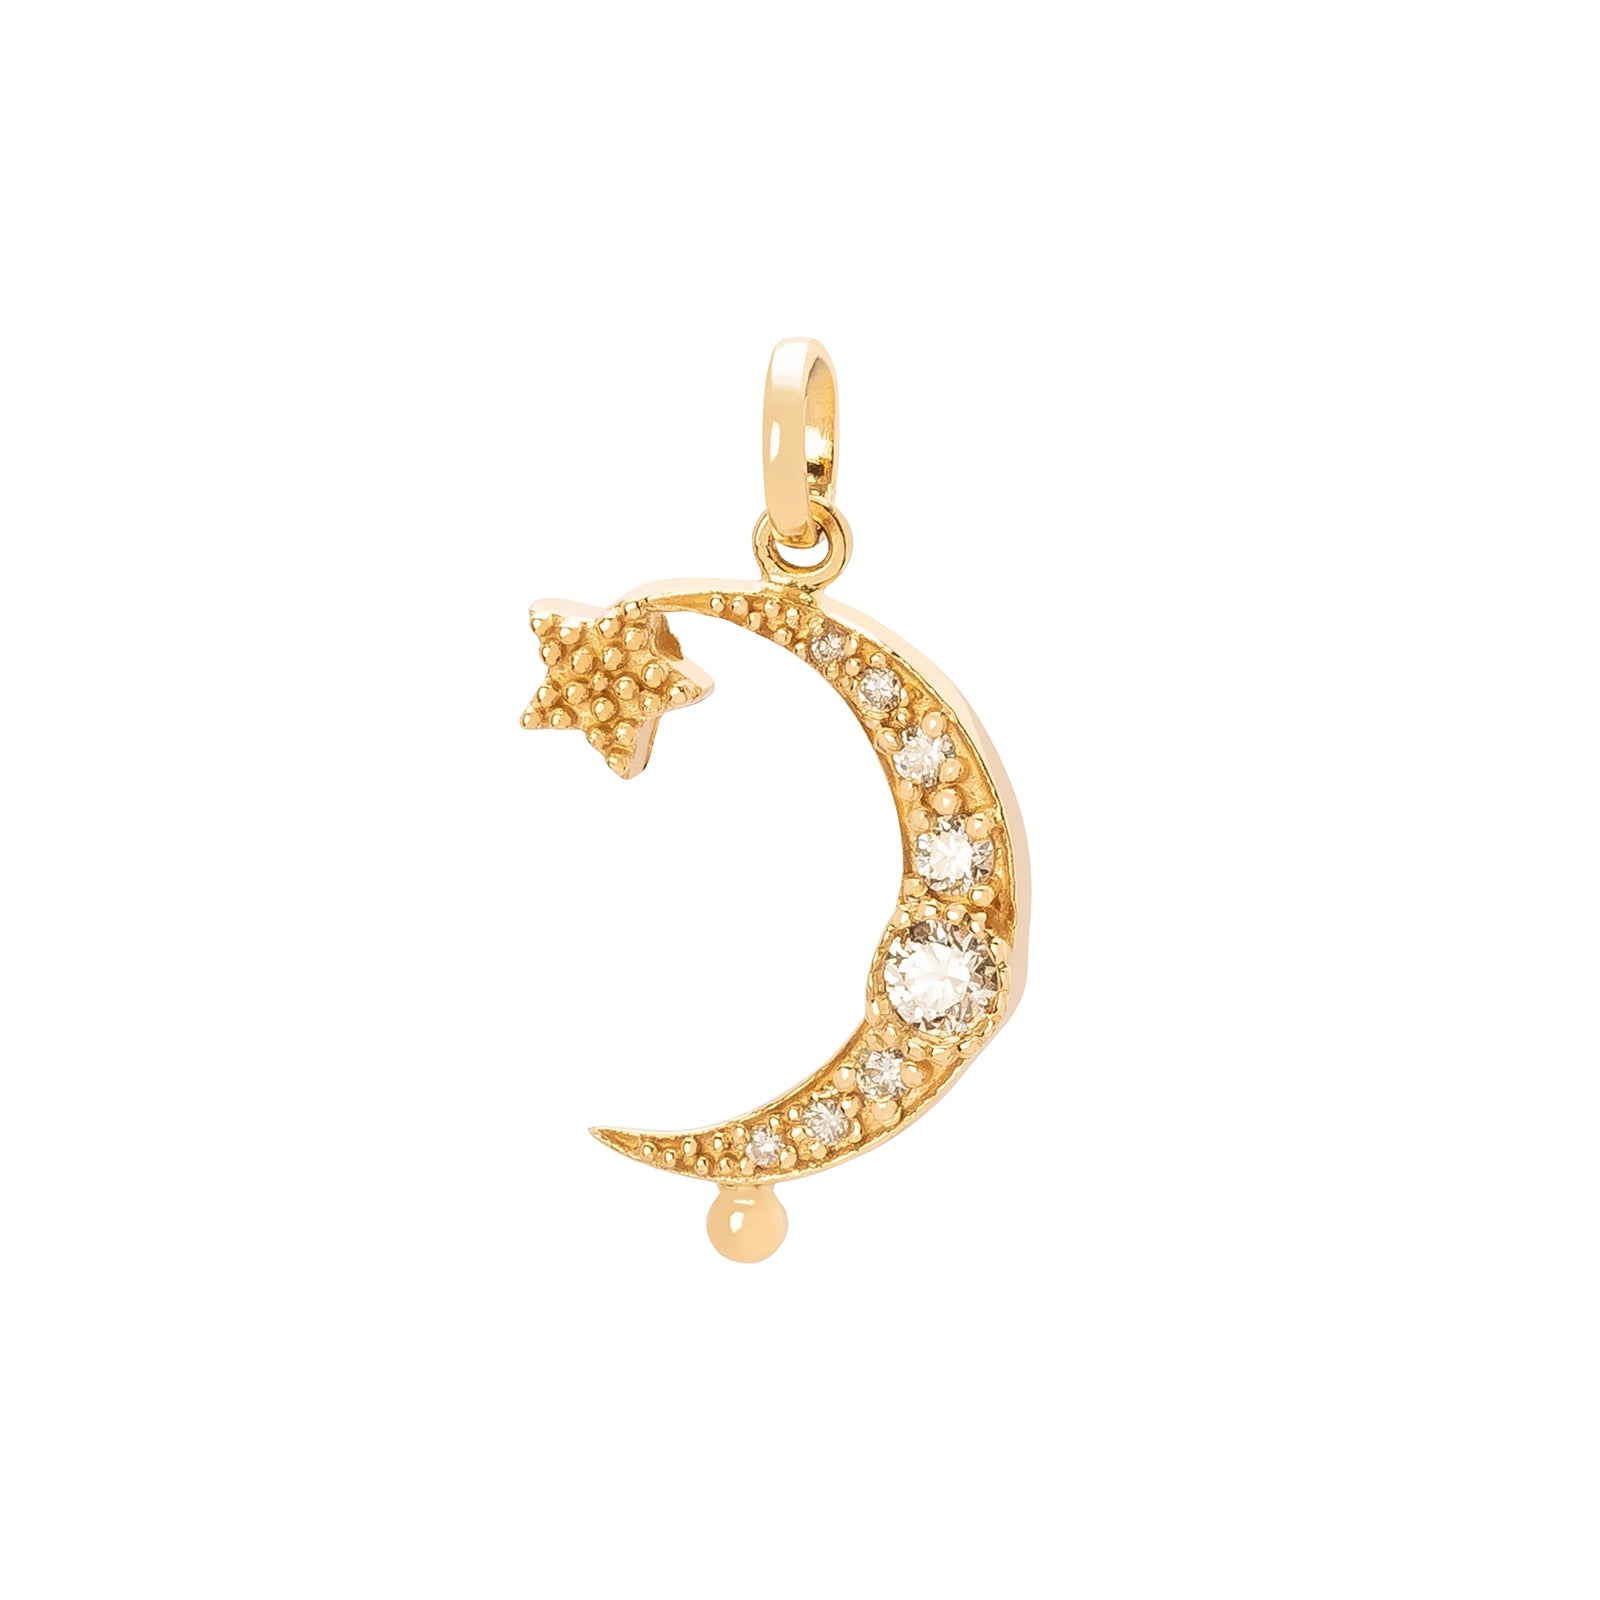 Carolina Neves Moon & Star Pendant - Charms & Pendants - Broken English Jewelry